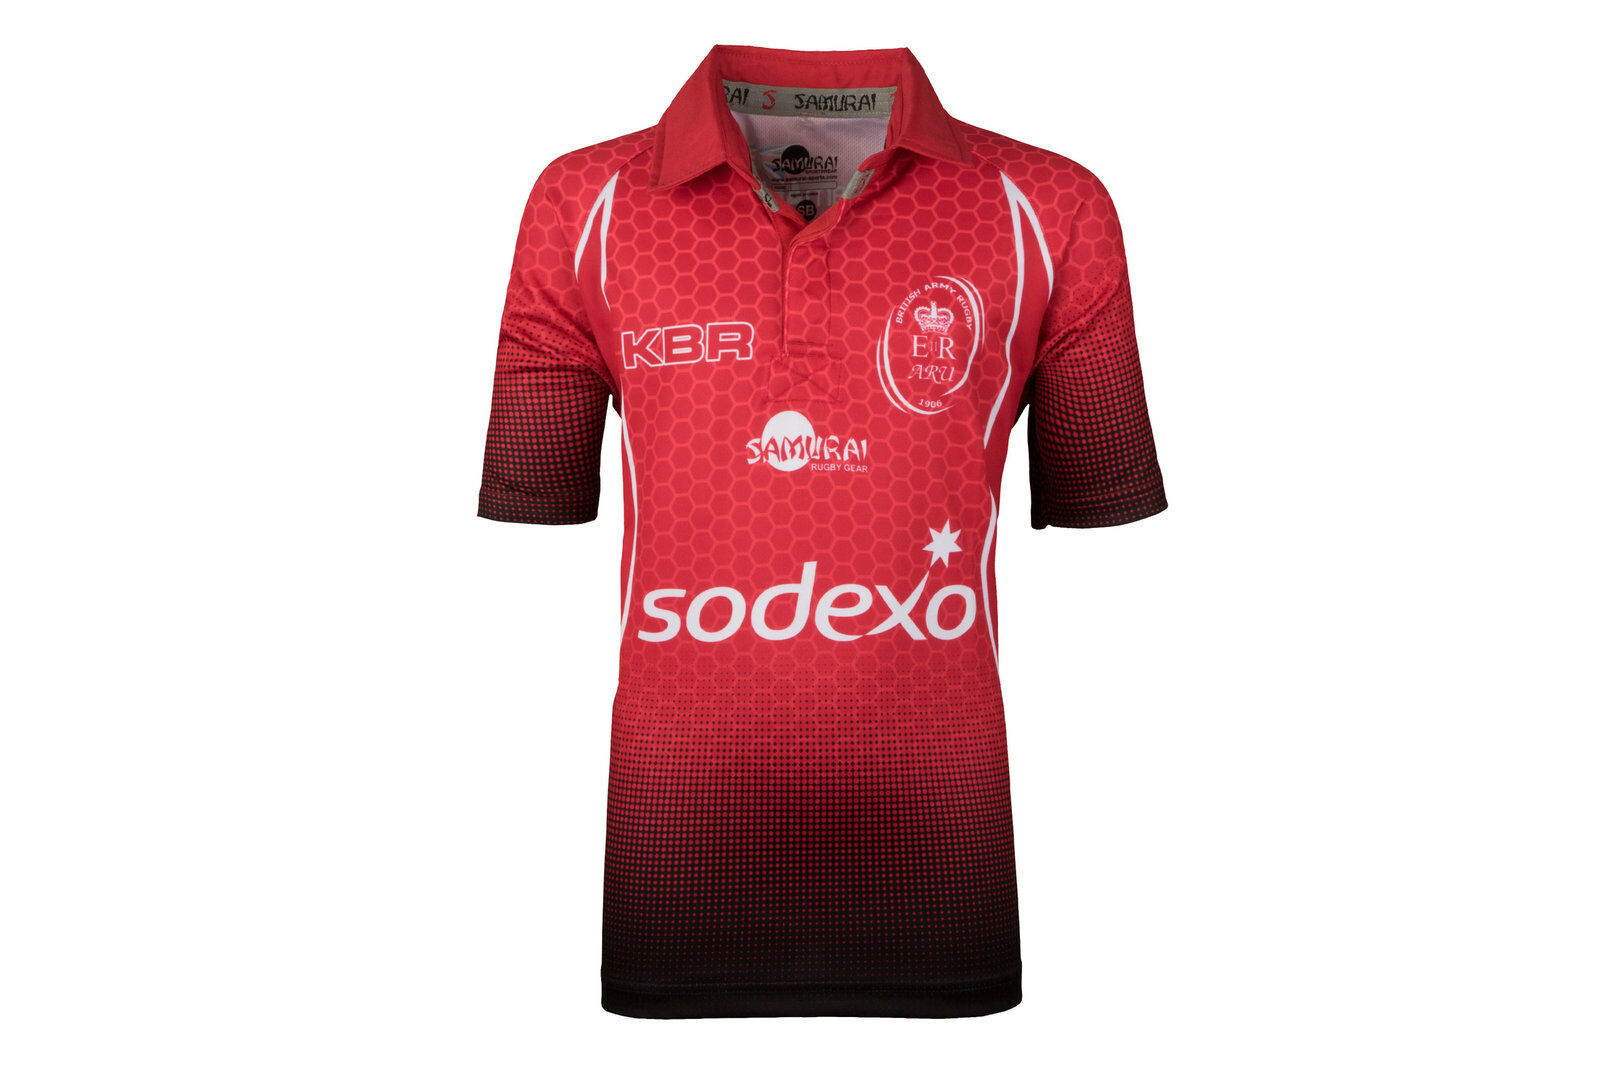 Samurai Army Rugby Union 2018 Kids Home Short Sleeve Shirt Red Top Sports